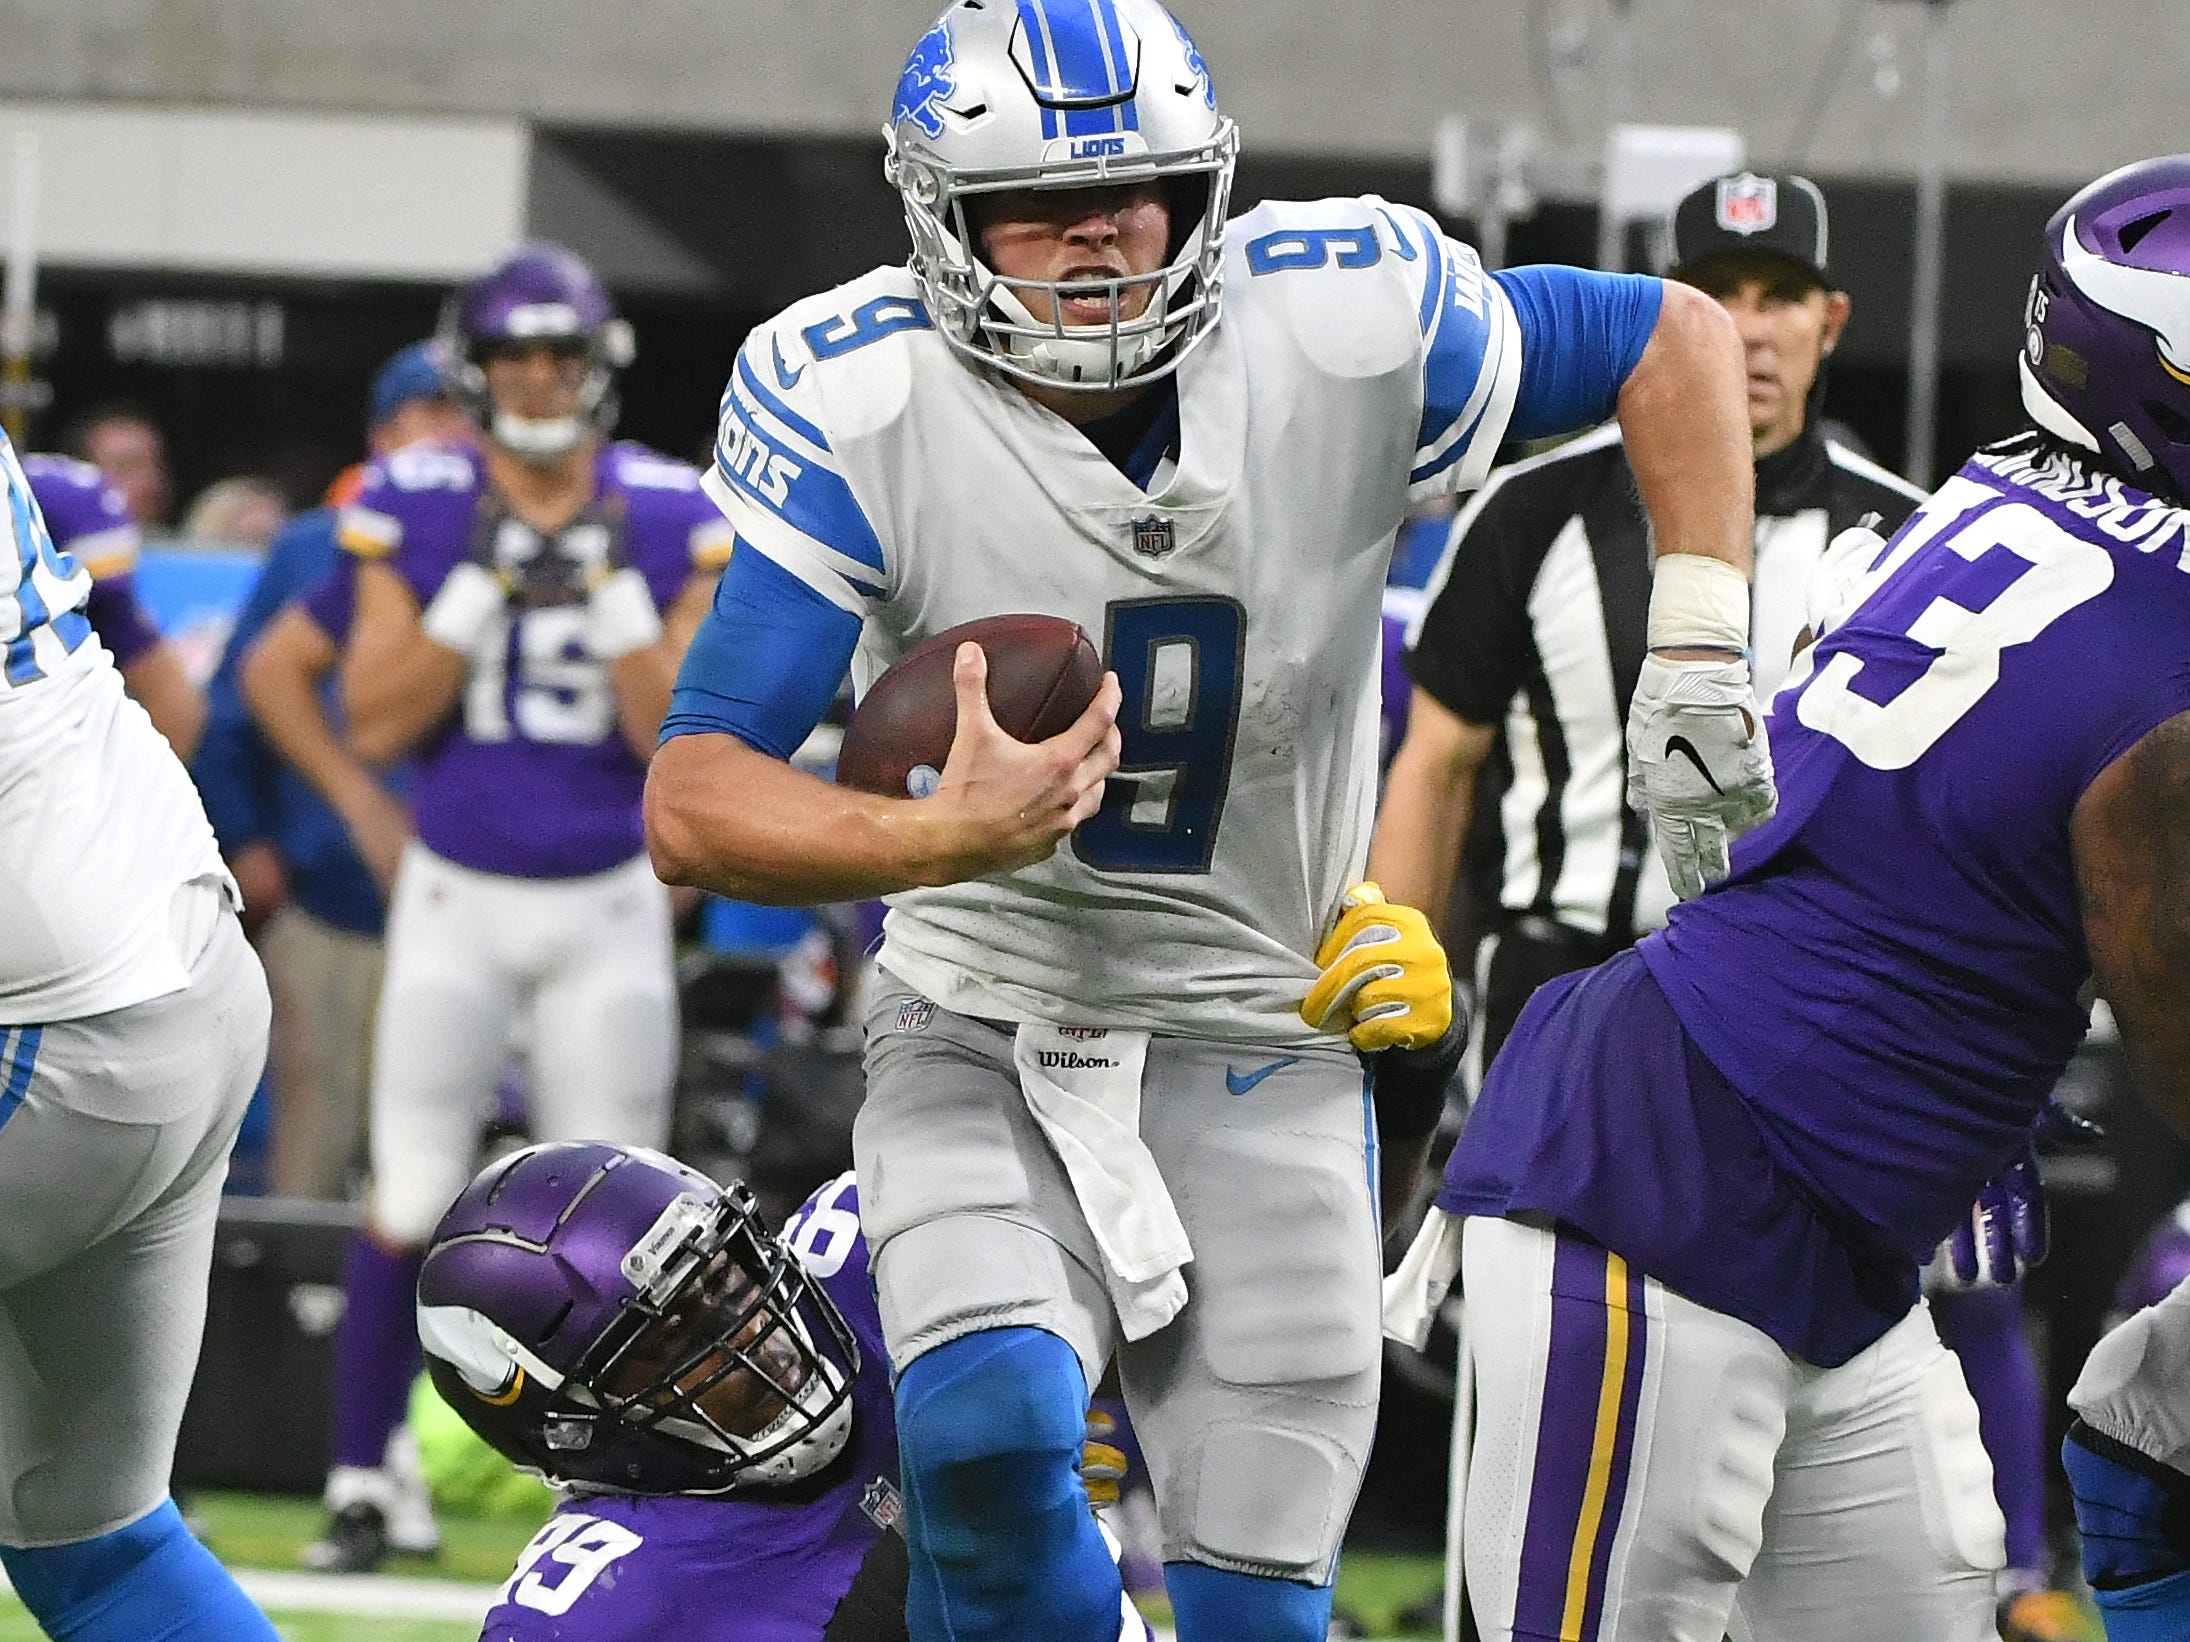 Lions quarterback Matthew Stafford is going nowhere as  Vikings' Danielle Hunter ties up Stafford's leg late for another sack, this one in the fourth quarter, of the 24-9 loss to Minnesota at U.S. Bank Stadium in Minneapolis, Minnesota on November 4, 2018.